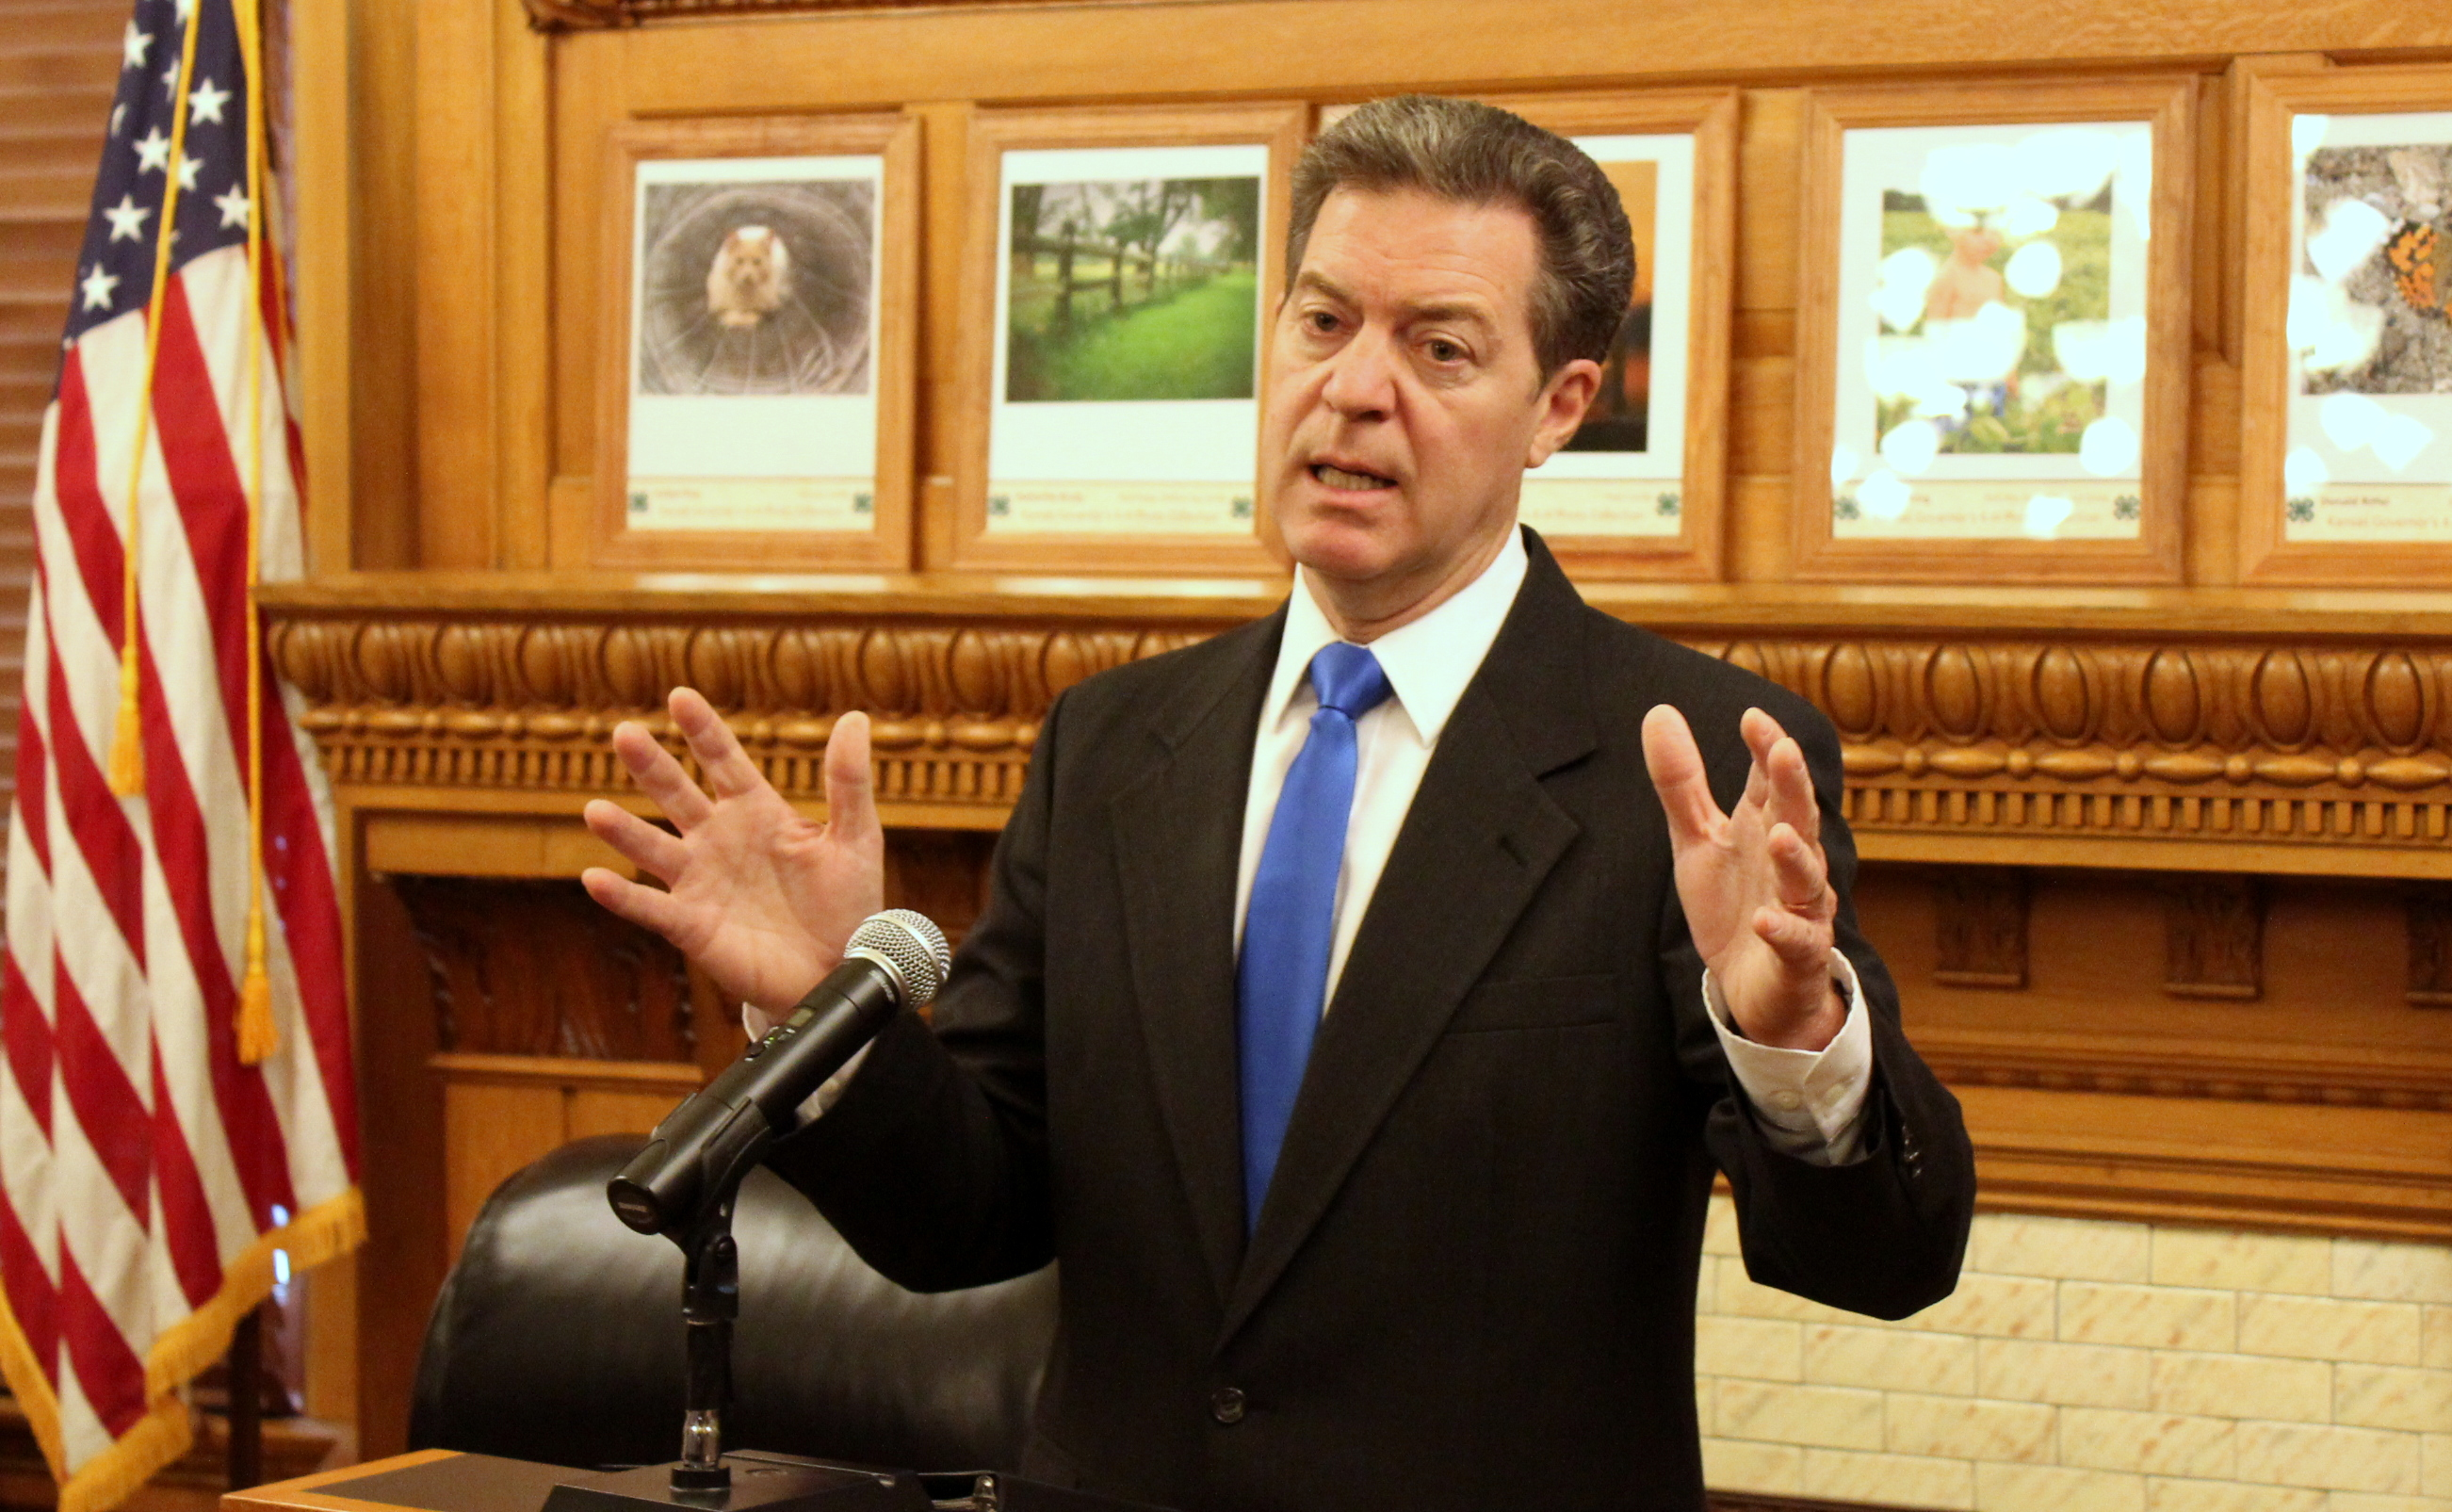 Governor Sam Brownback speaking in his office. (Photo by Stephen Koranda)